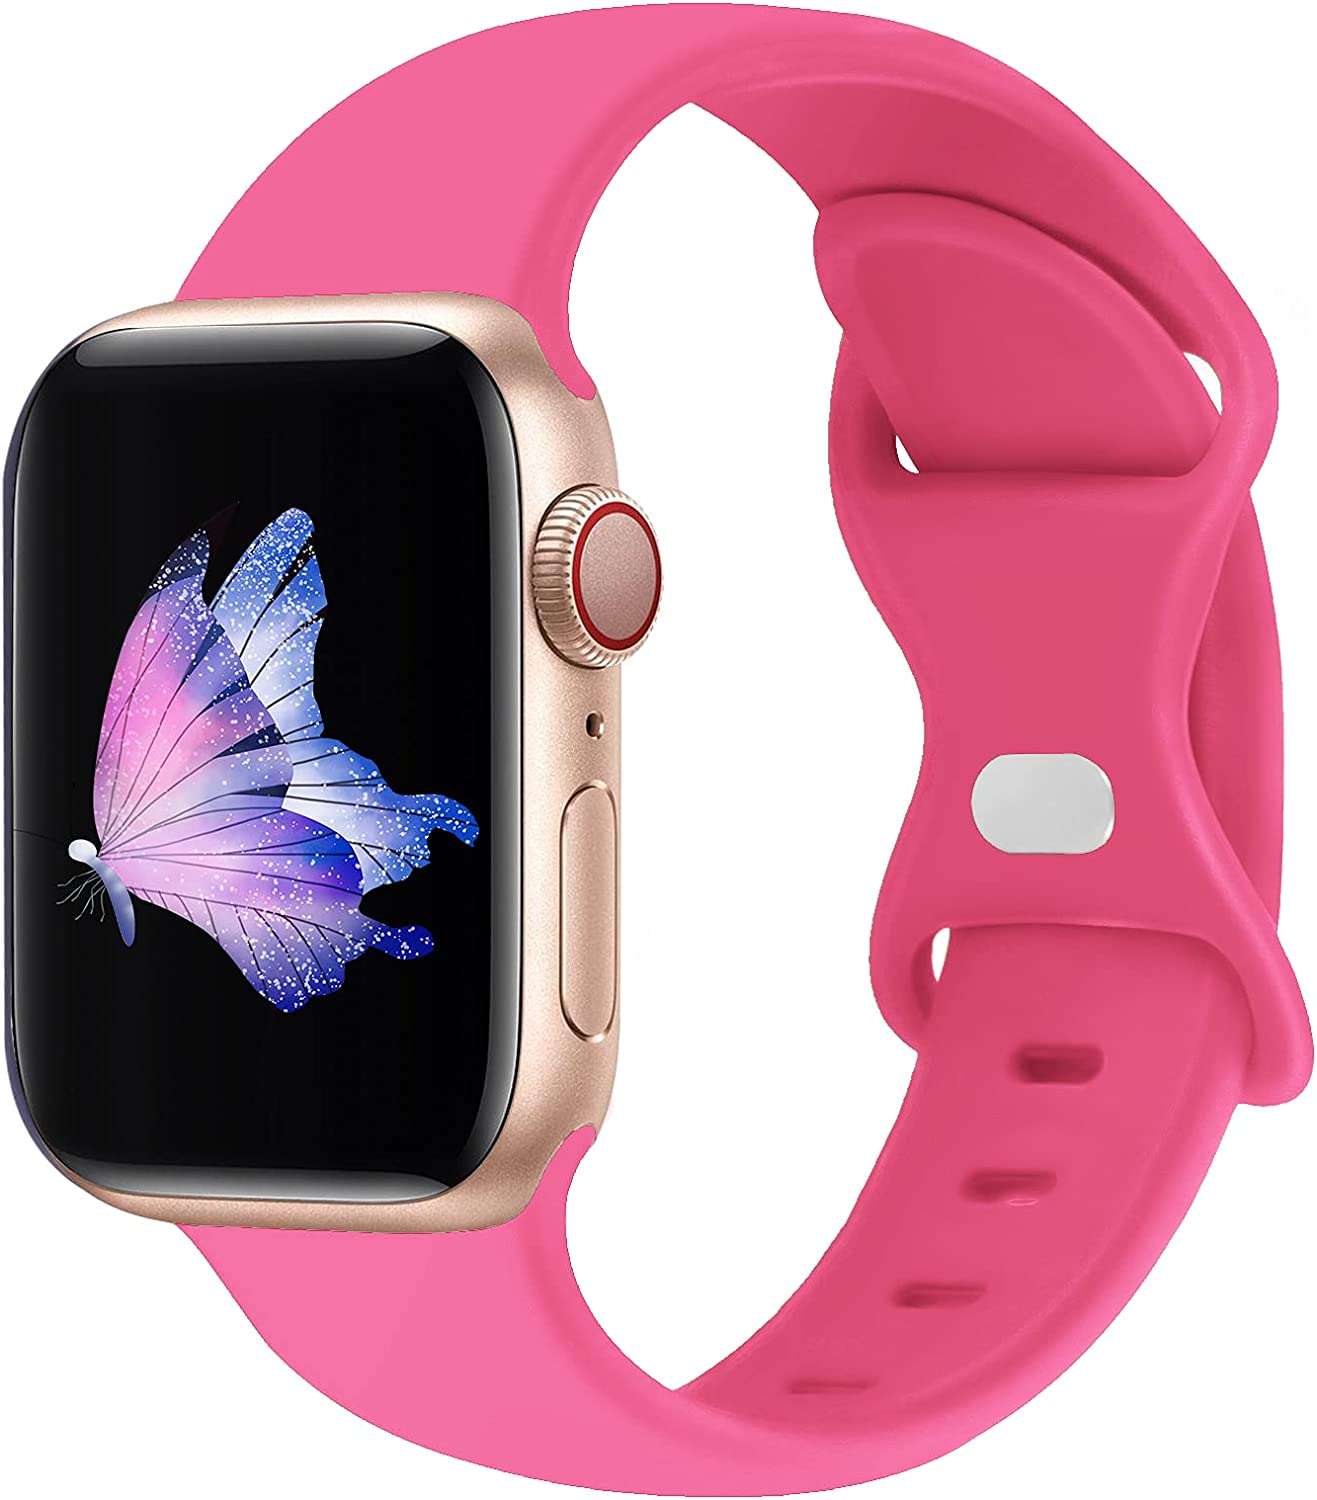 SinceC Sport Bands Compatible with Apple Watch Band 38mm 40mm 42mm 44mm S/M M/L for Women/Men Waterproof Soft Silicone Replacement Strap Accessories for iWatch Series 6/5/4/3/2/1/SE